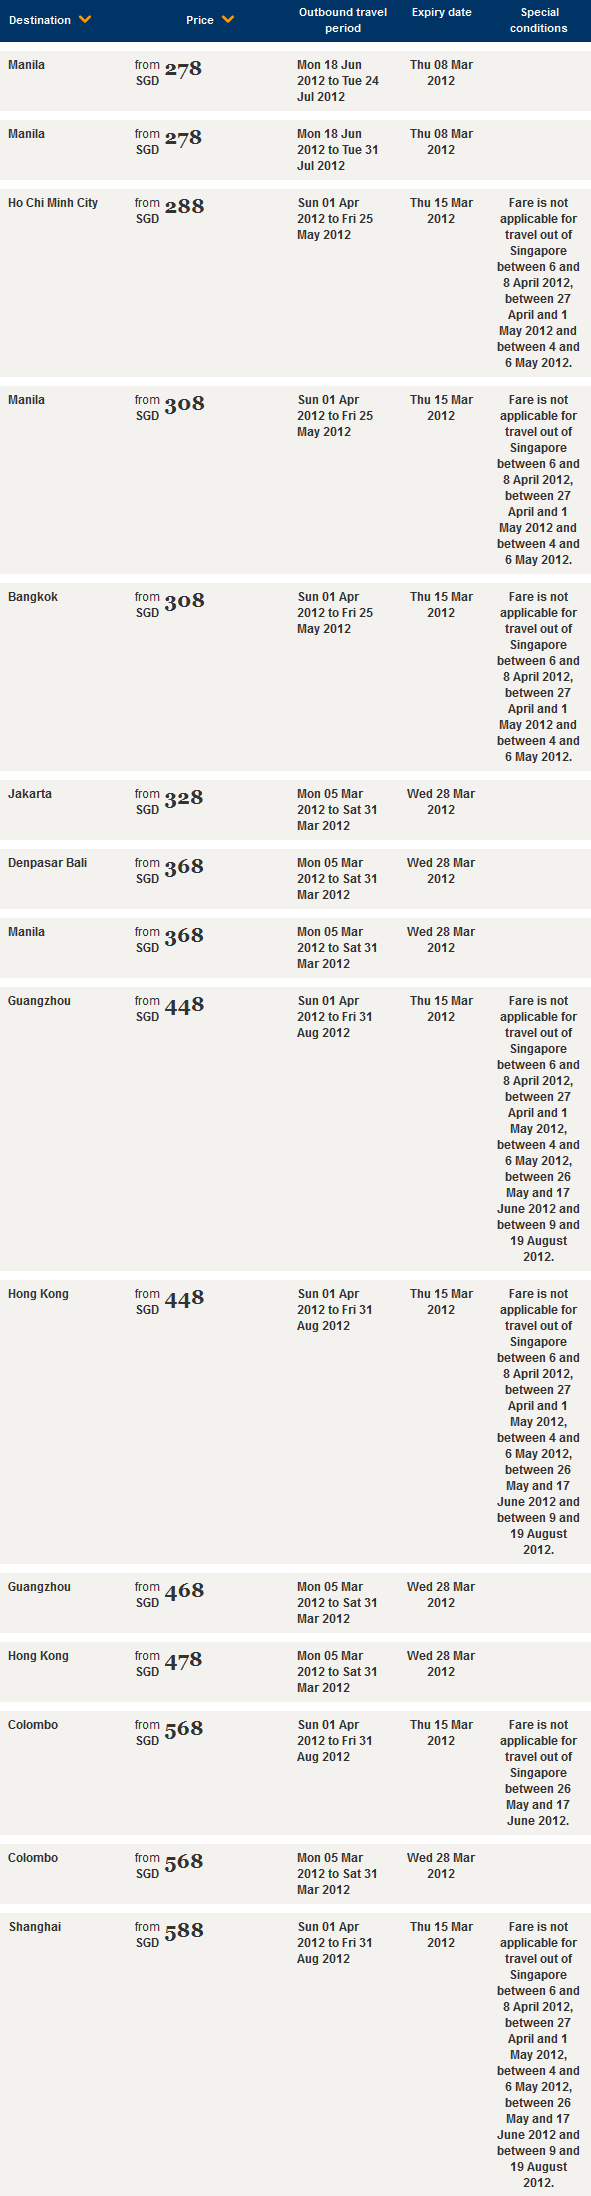 Singapore Airlines Fare Deals for March 2012